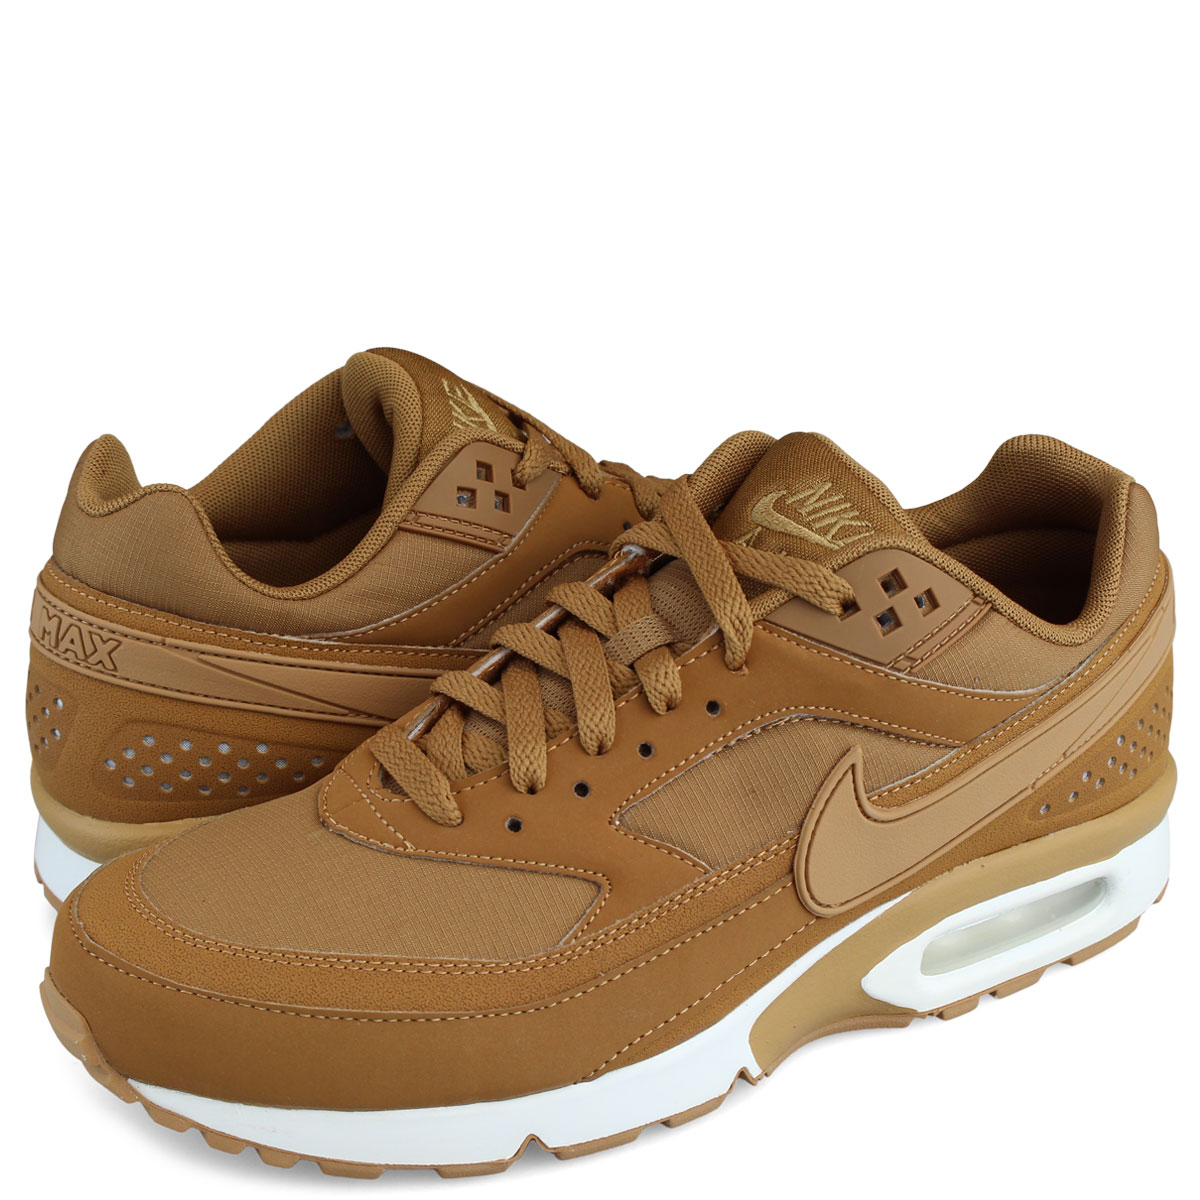 sale retailer 29b76 28fe5 NIKE AIR MAX BW Kie Ney AMAX sneakers 881,981-200 men s big window shoes  light brown  load planned Shinnyu load in reservation product 11 1  containing  ...